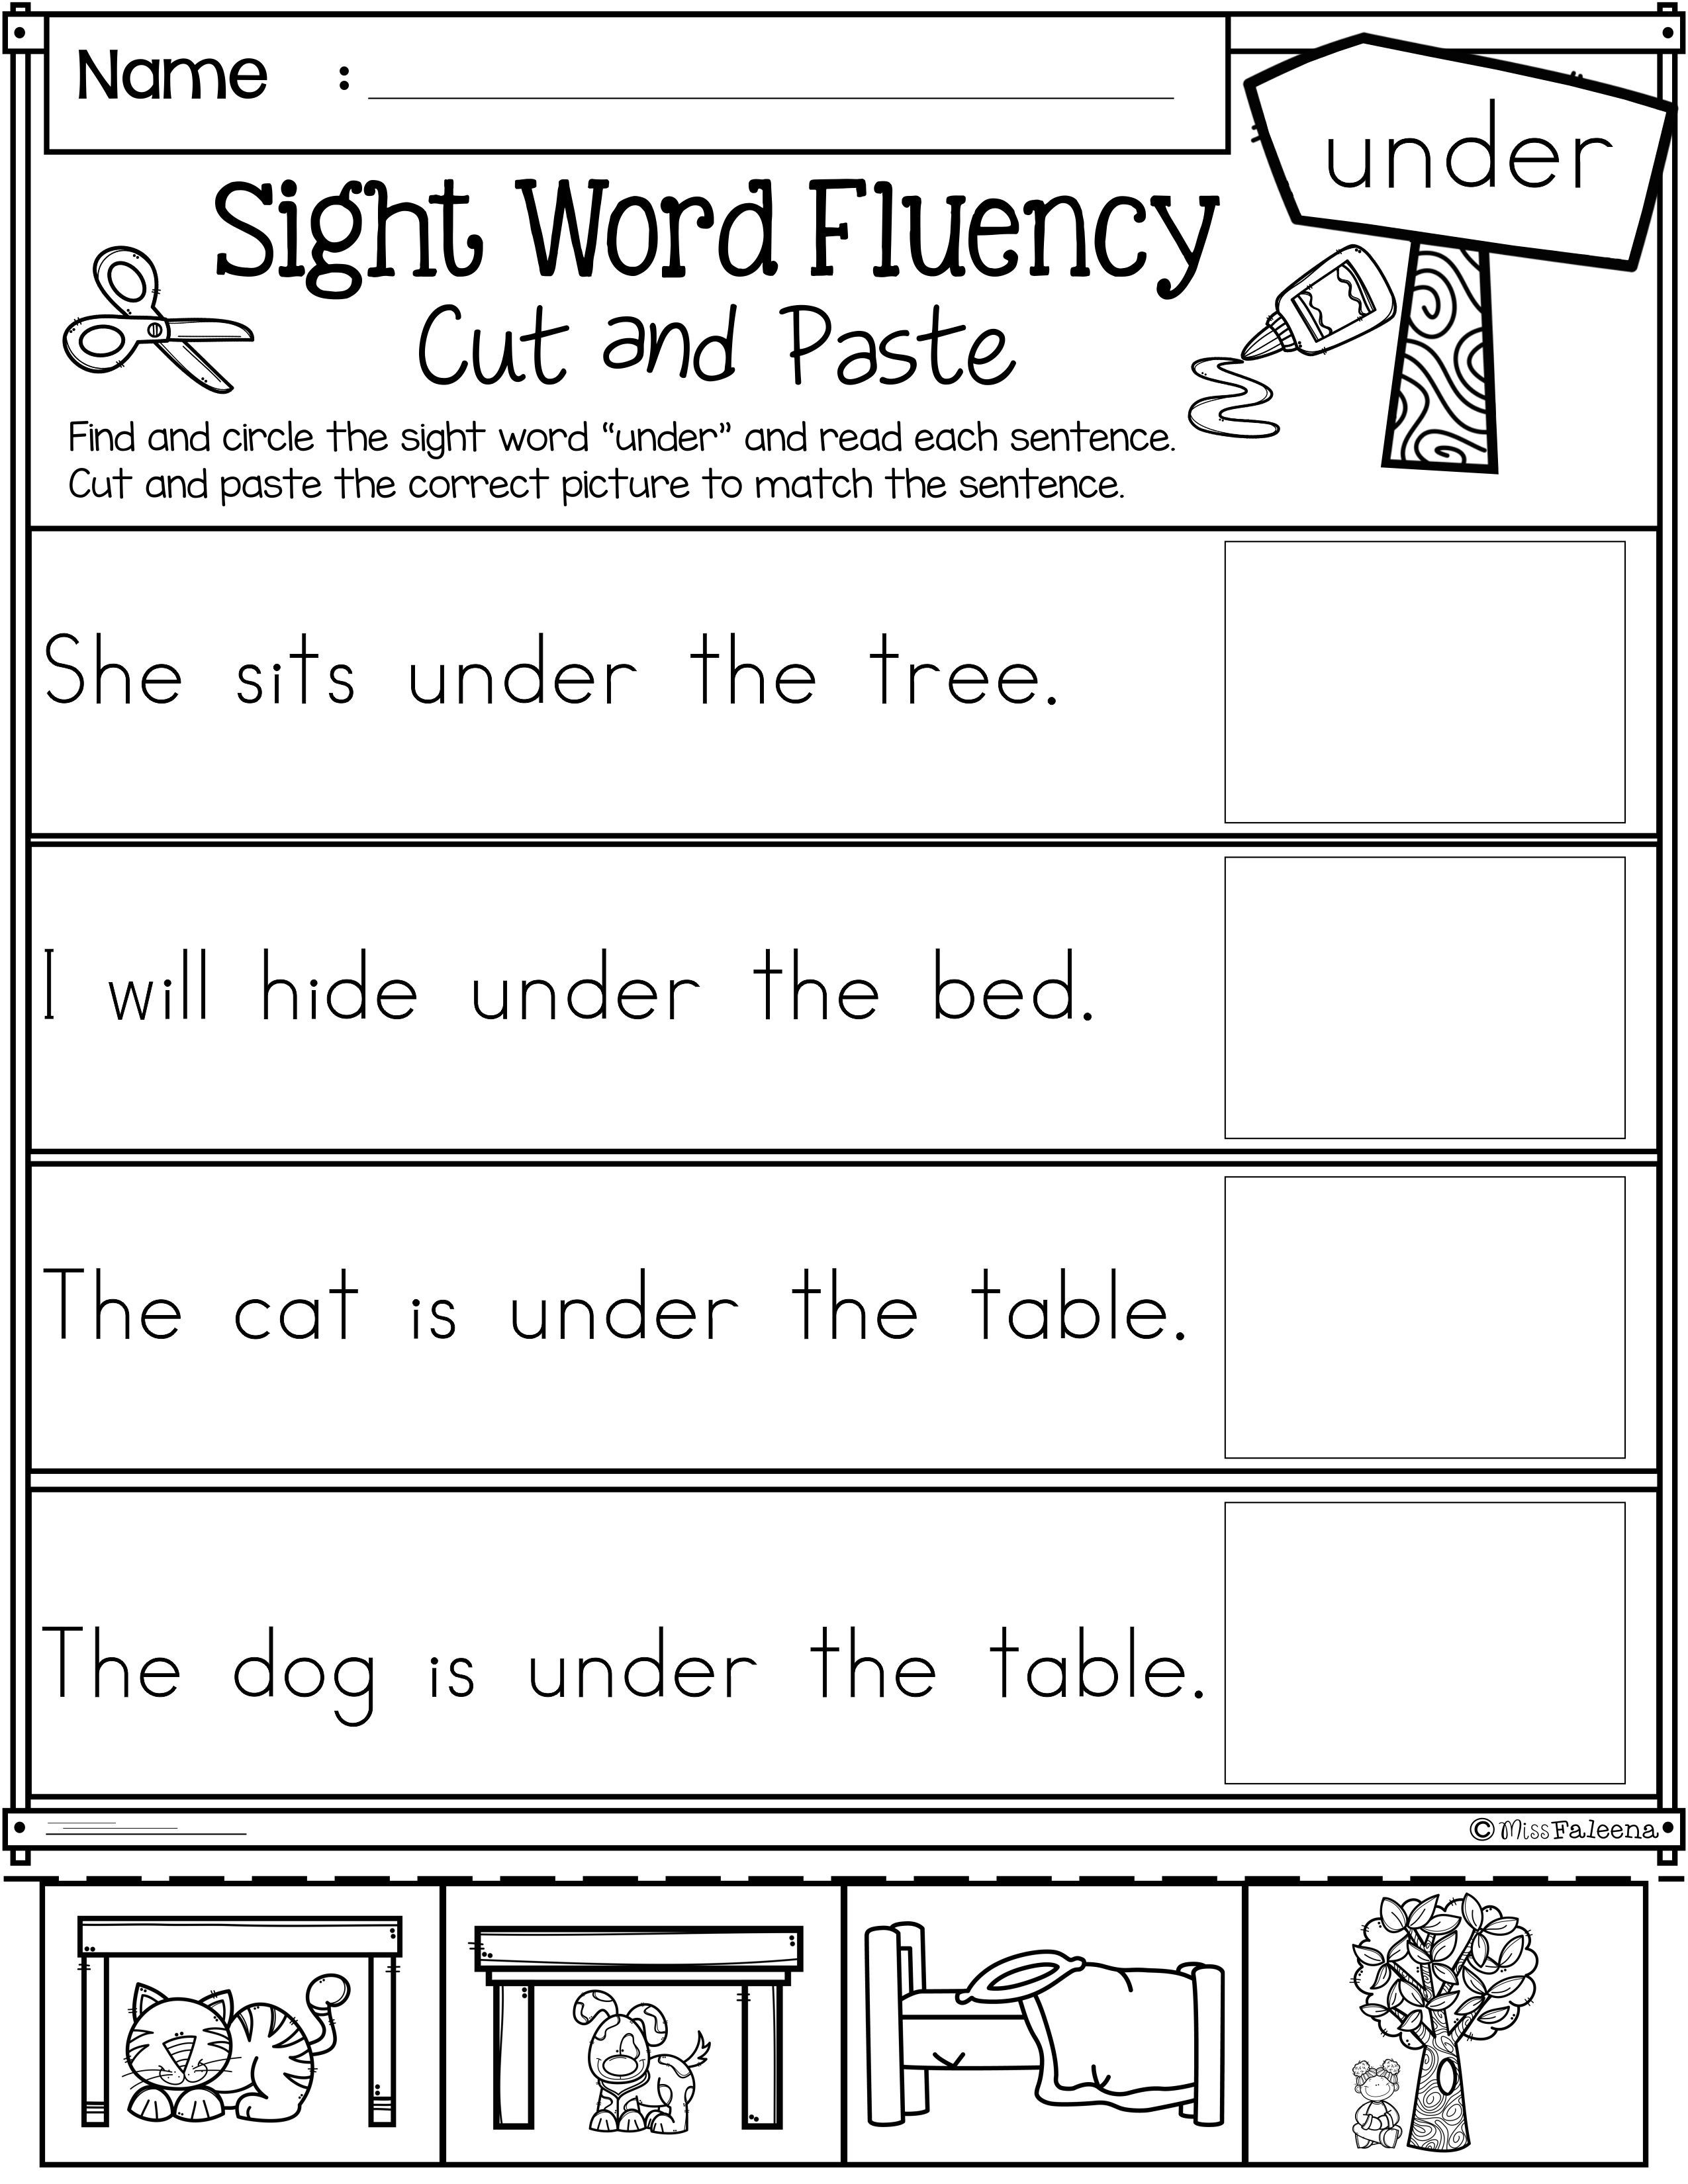 Sight Word Fluency Cut and Paste Primer